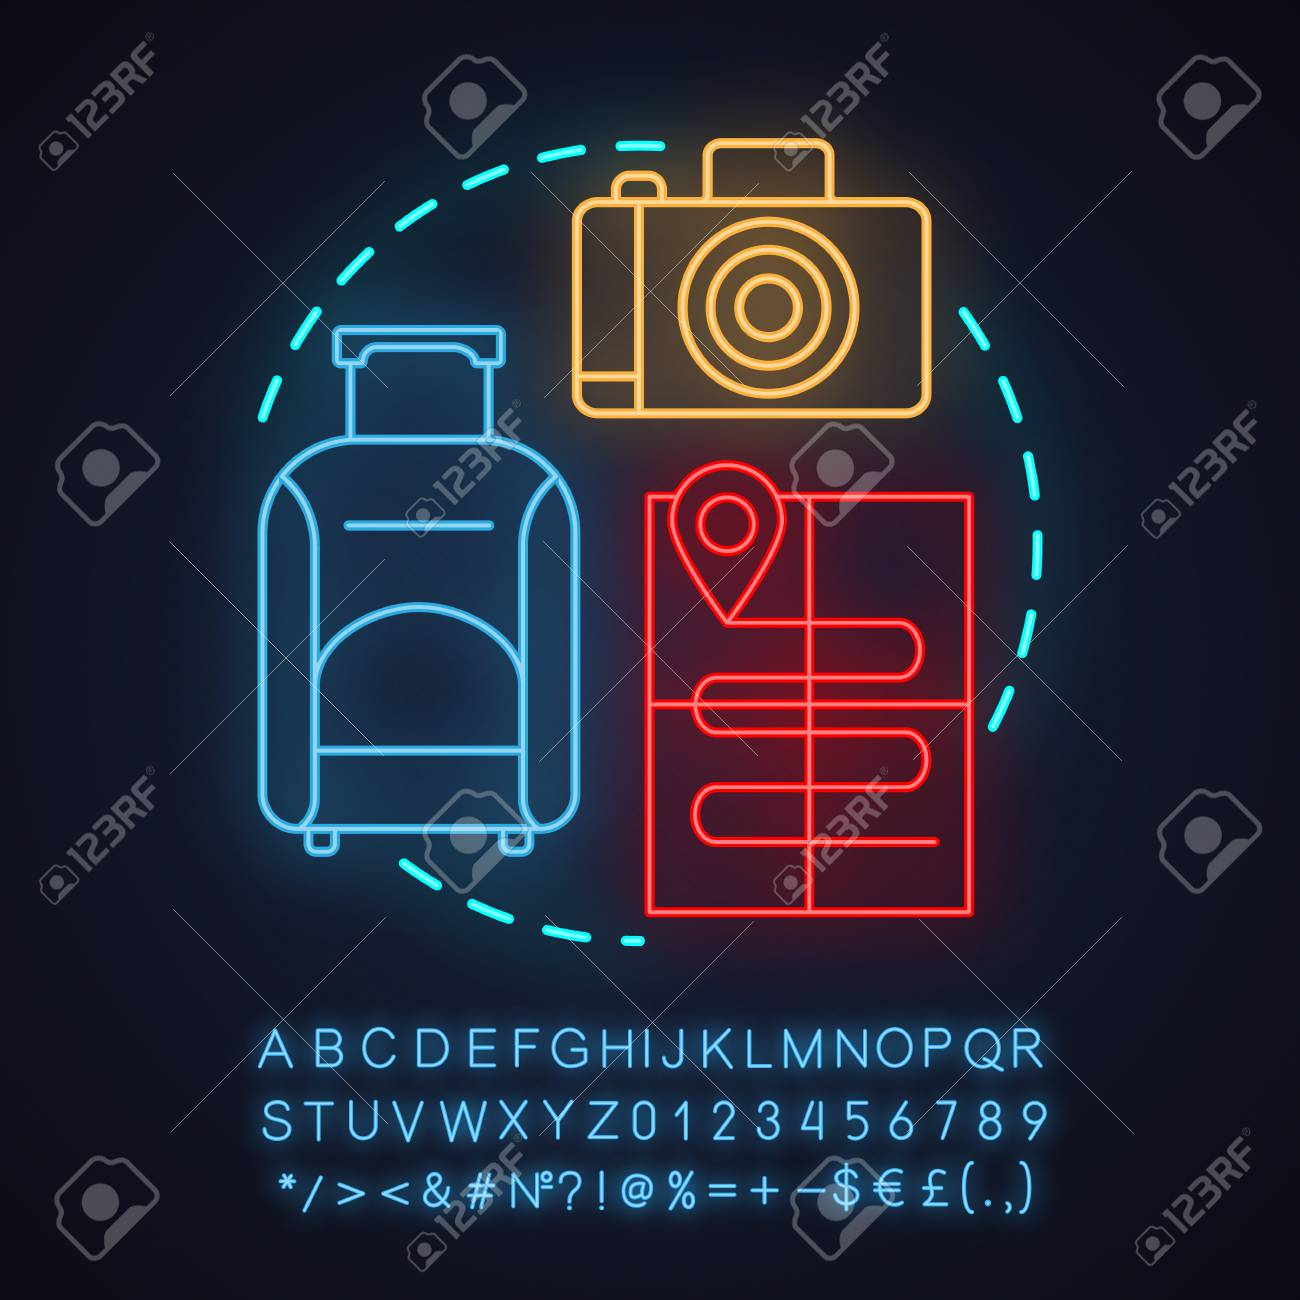 hight resolution of travel agency neon light concept icon going on trip idea travel planning baggage